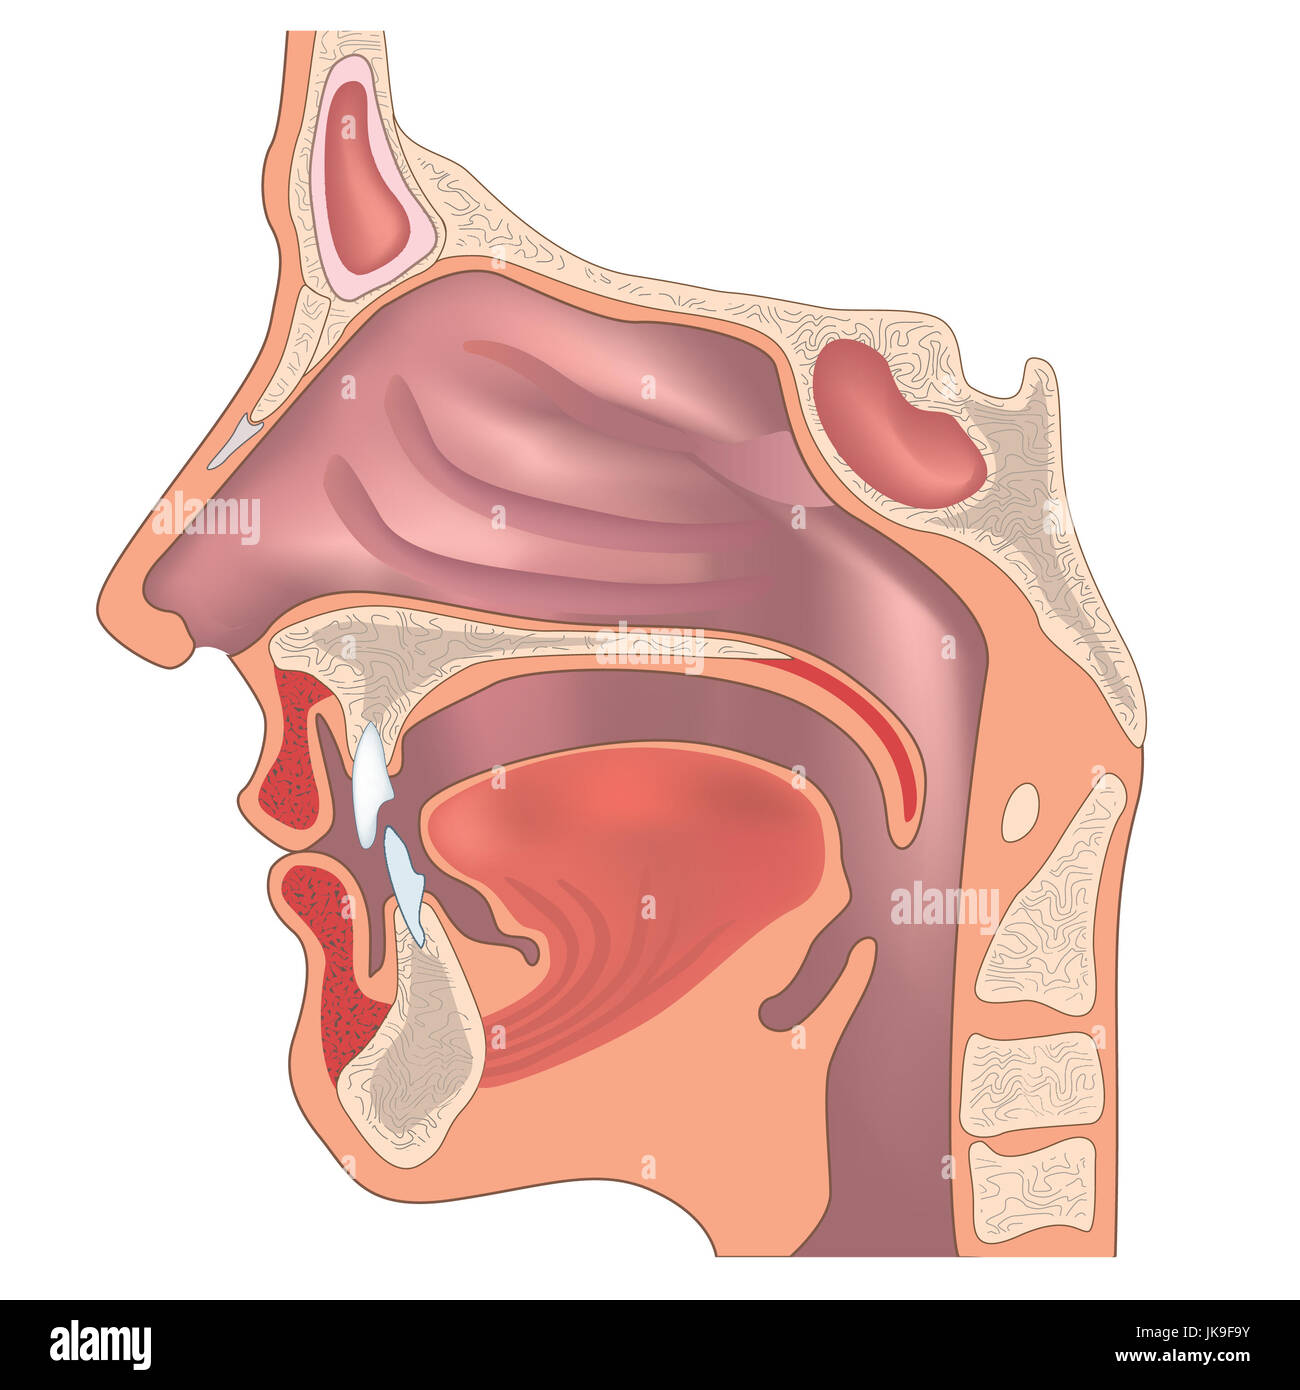 Anatomy Of The Nose And Throat Human Organ Structure Medical Sign